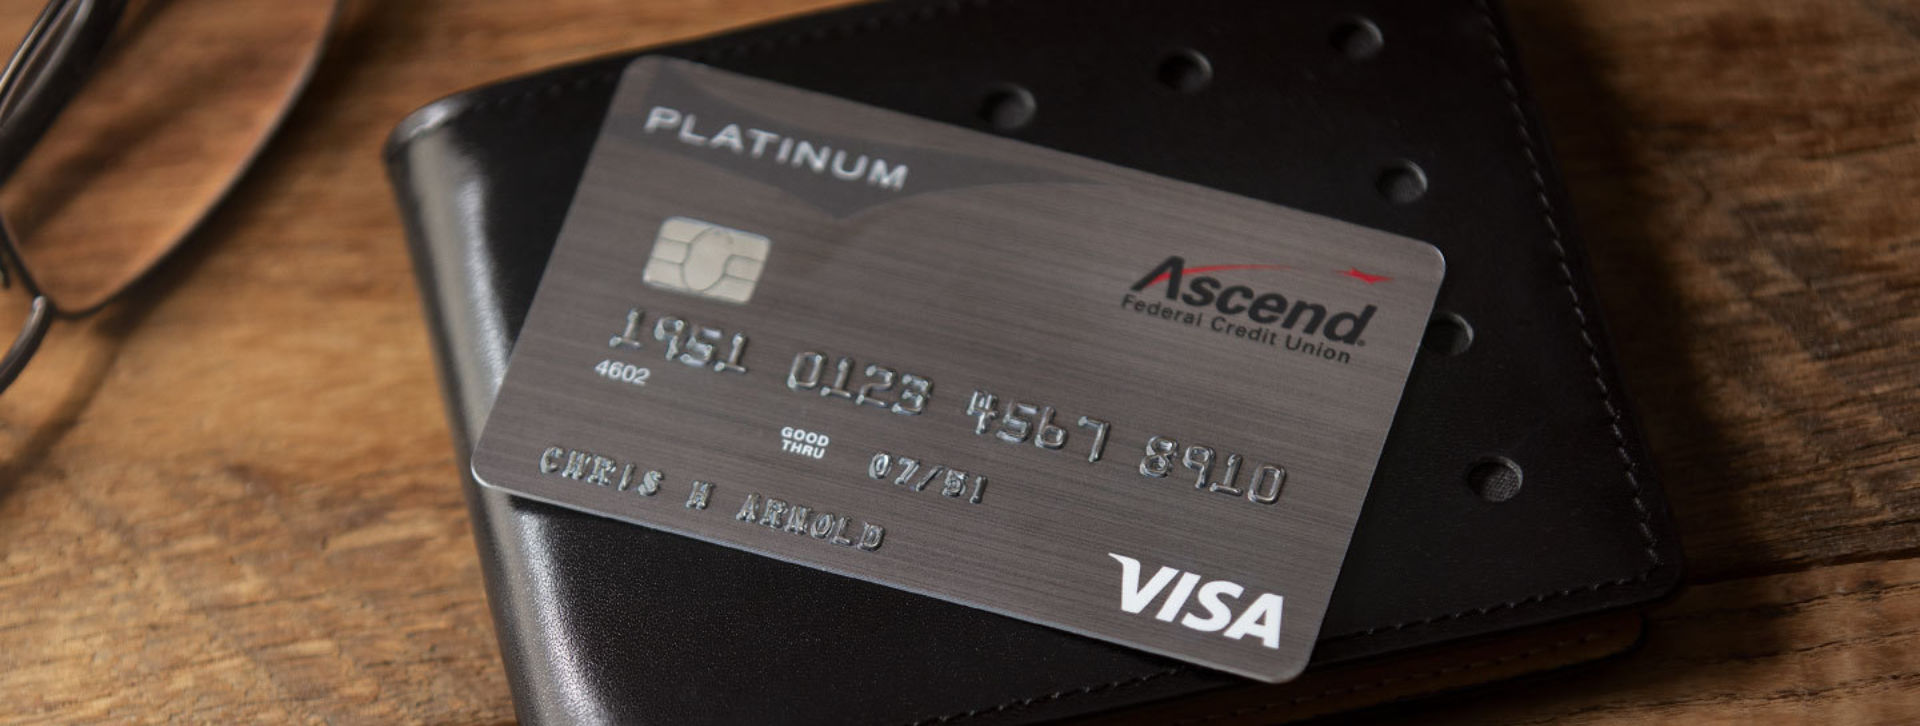 Image of ascend platinum credit card